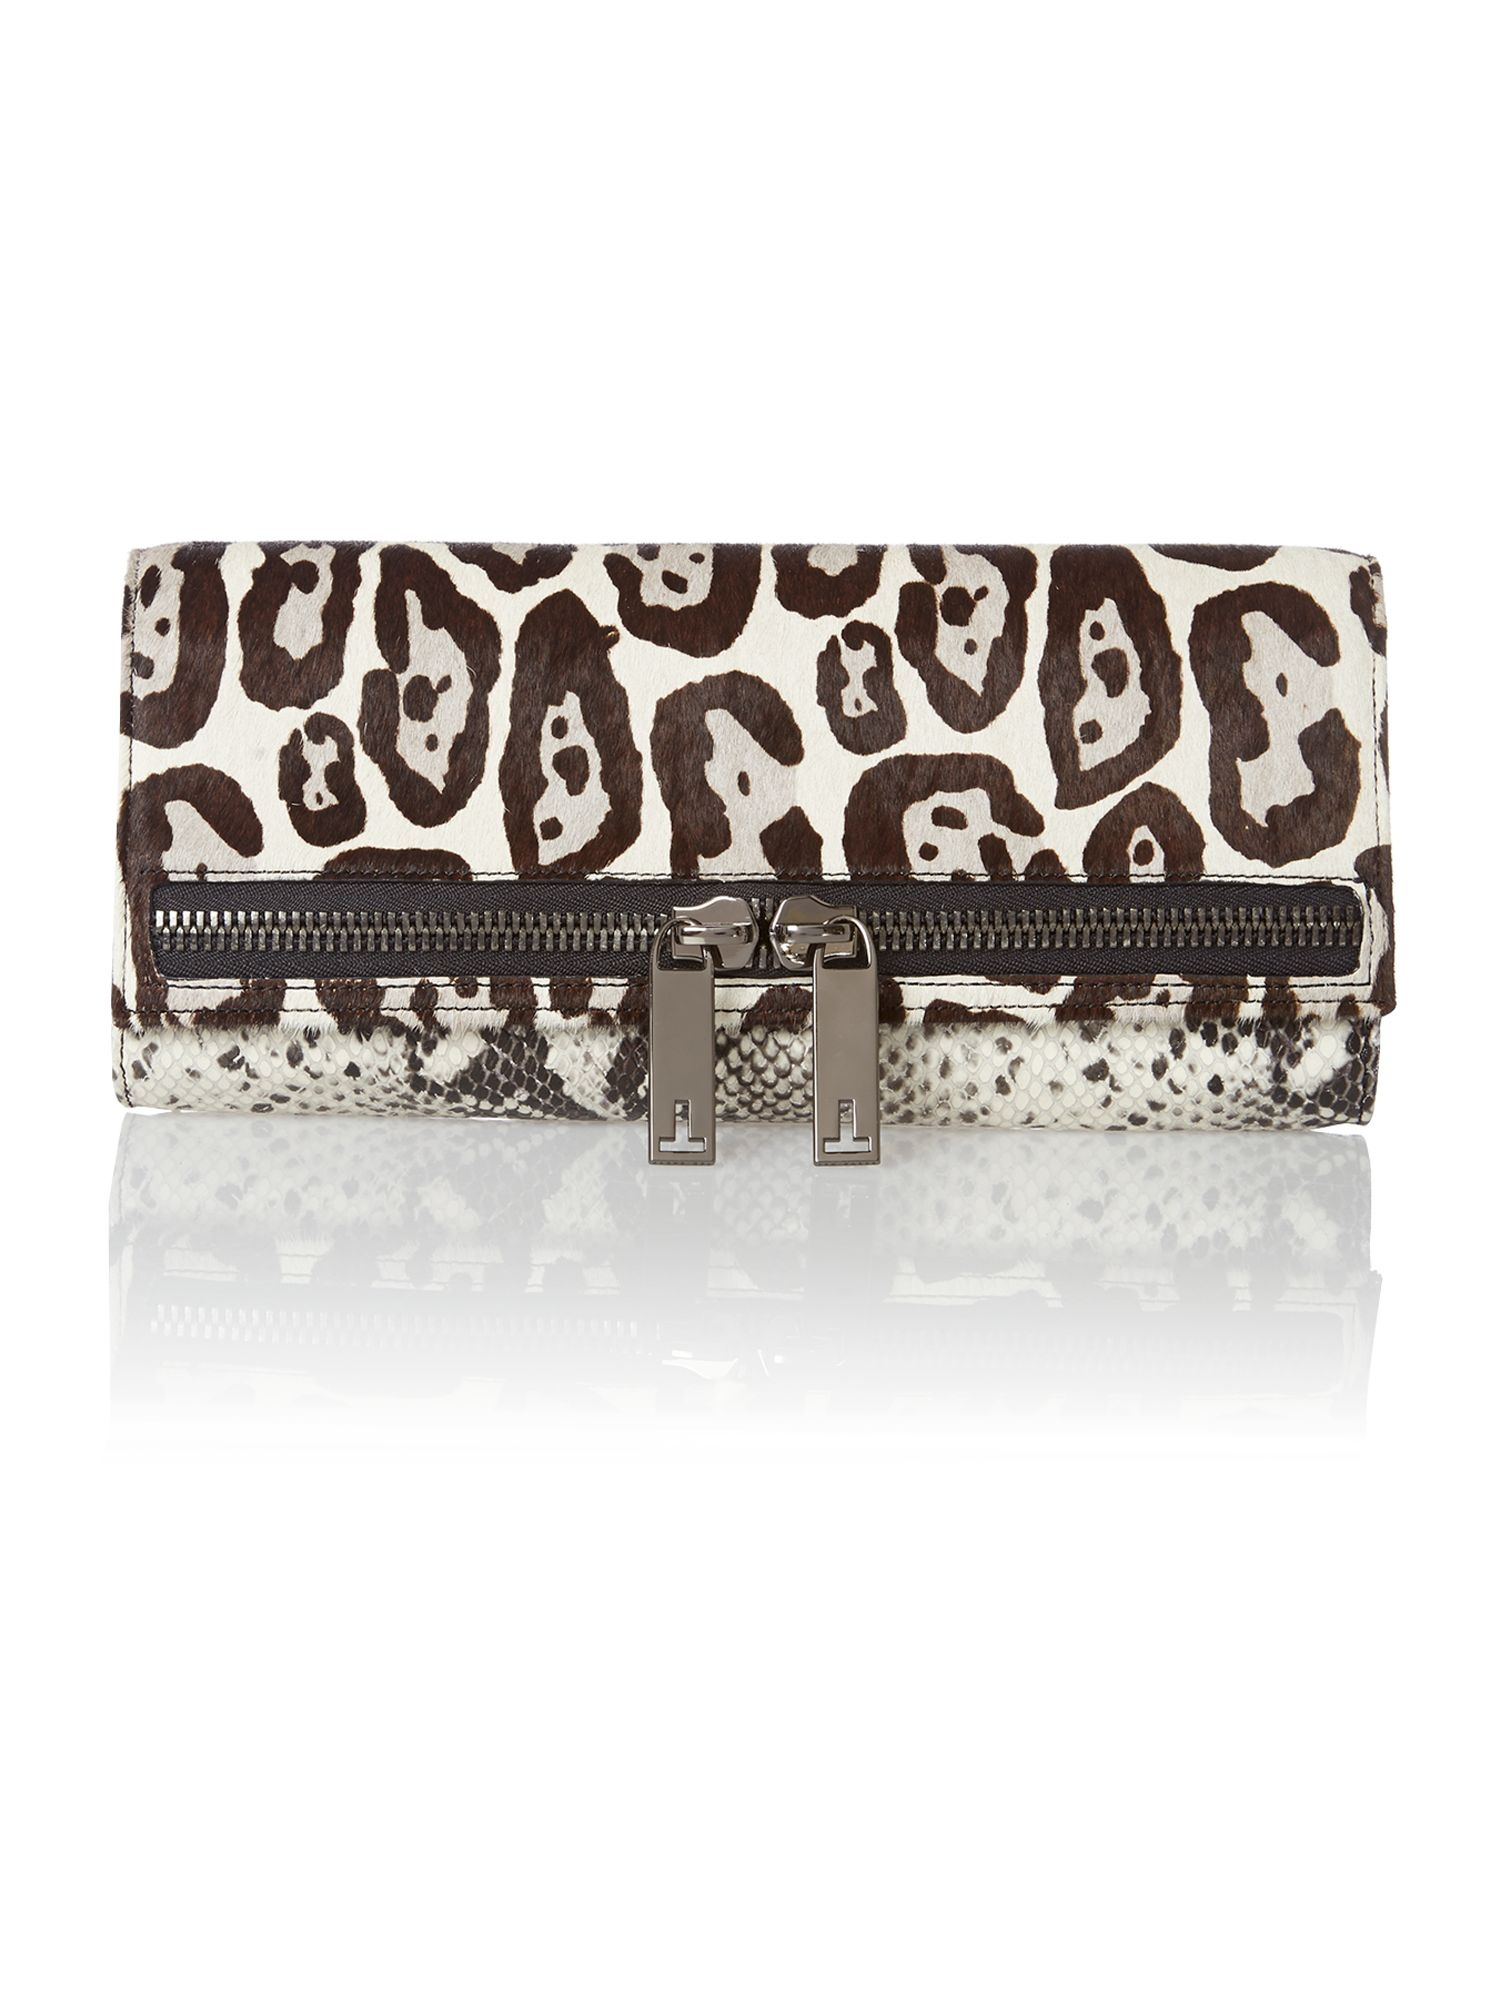 Black animal print clutch bag